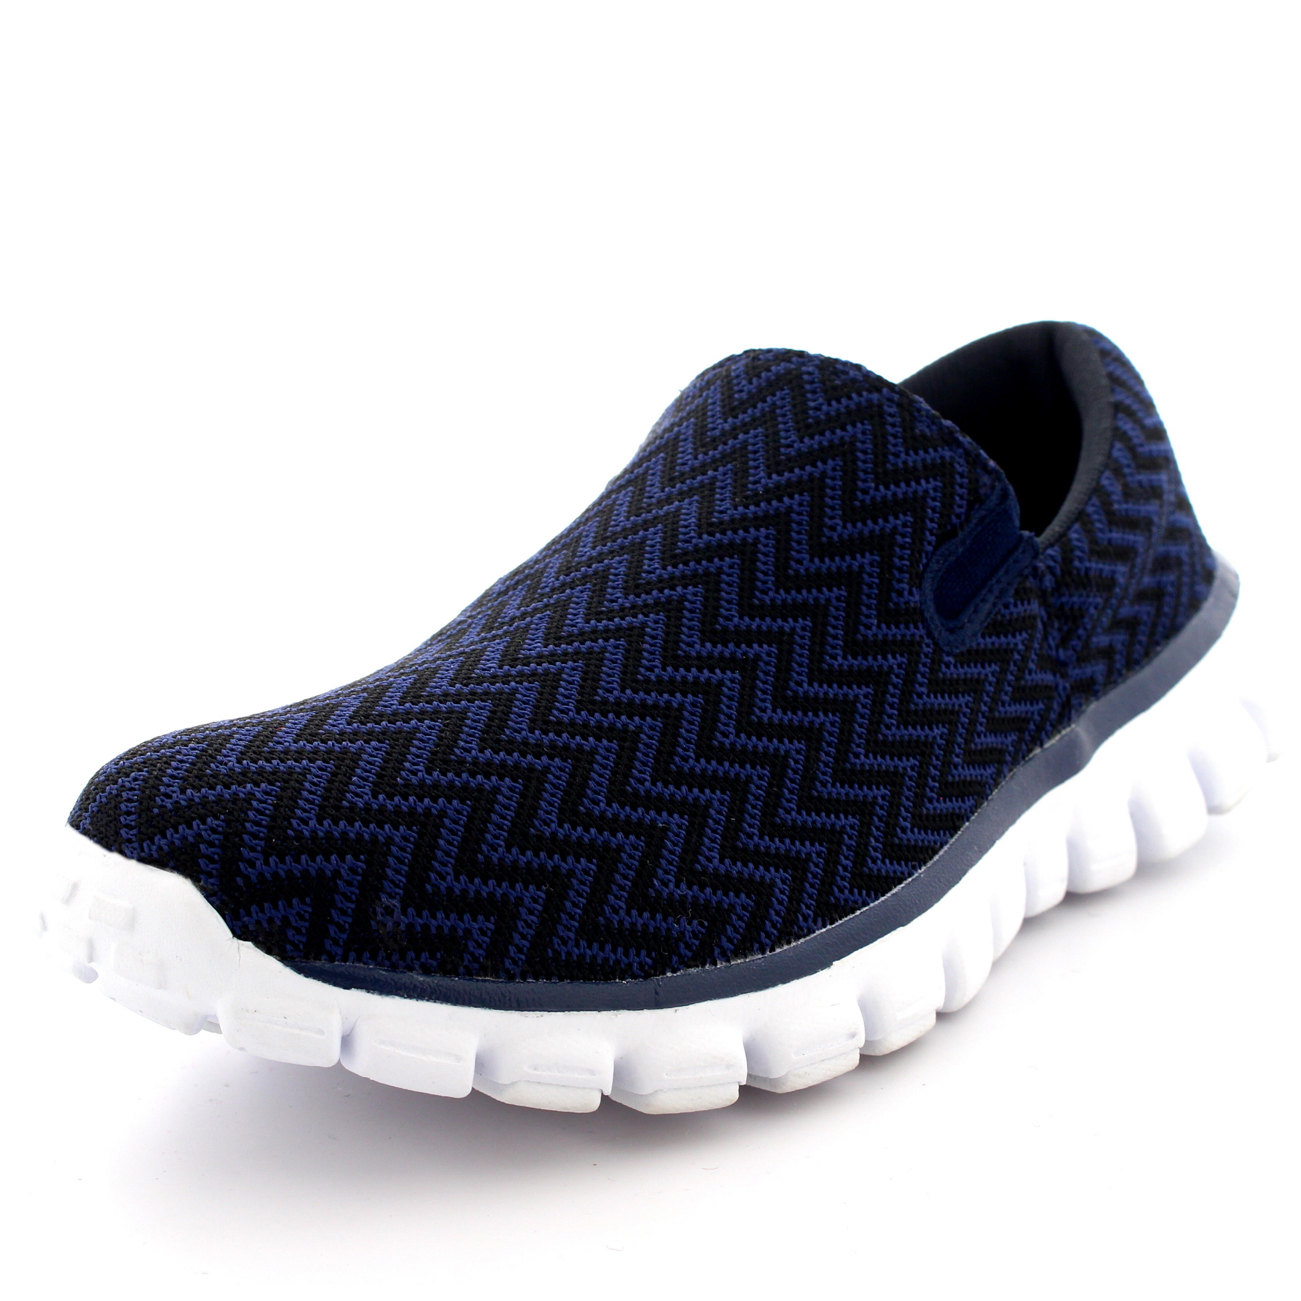 892859d9b4e6 Mens Sports Running Slip On Walking Gym Shoes Office Jogging ...